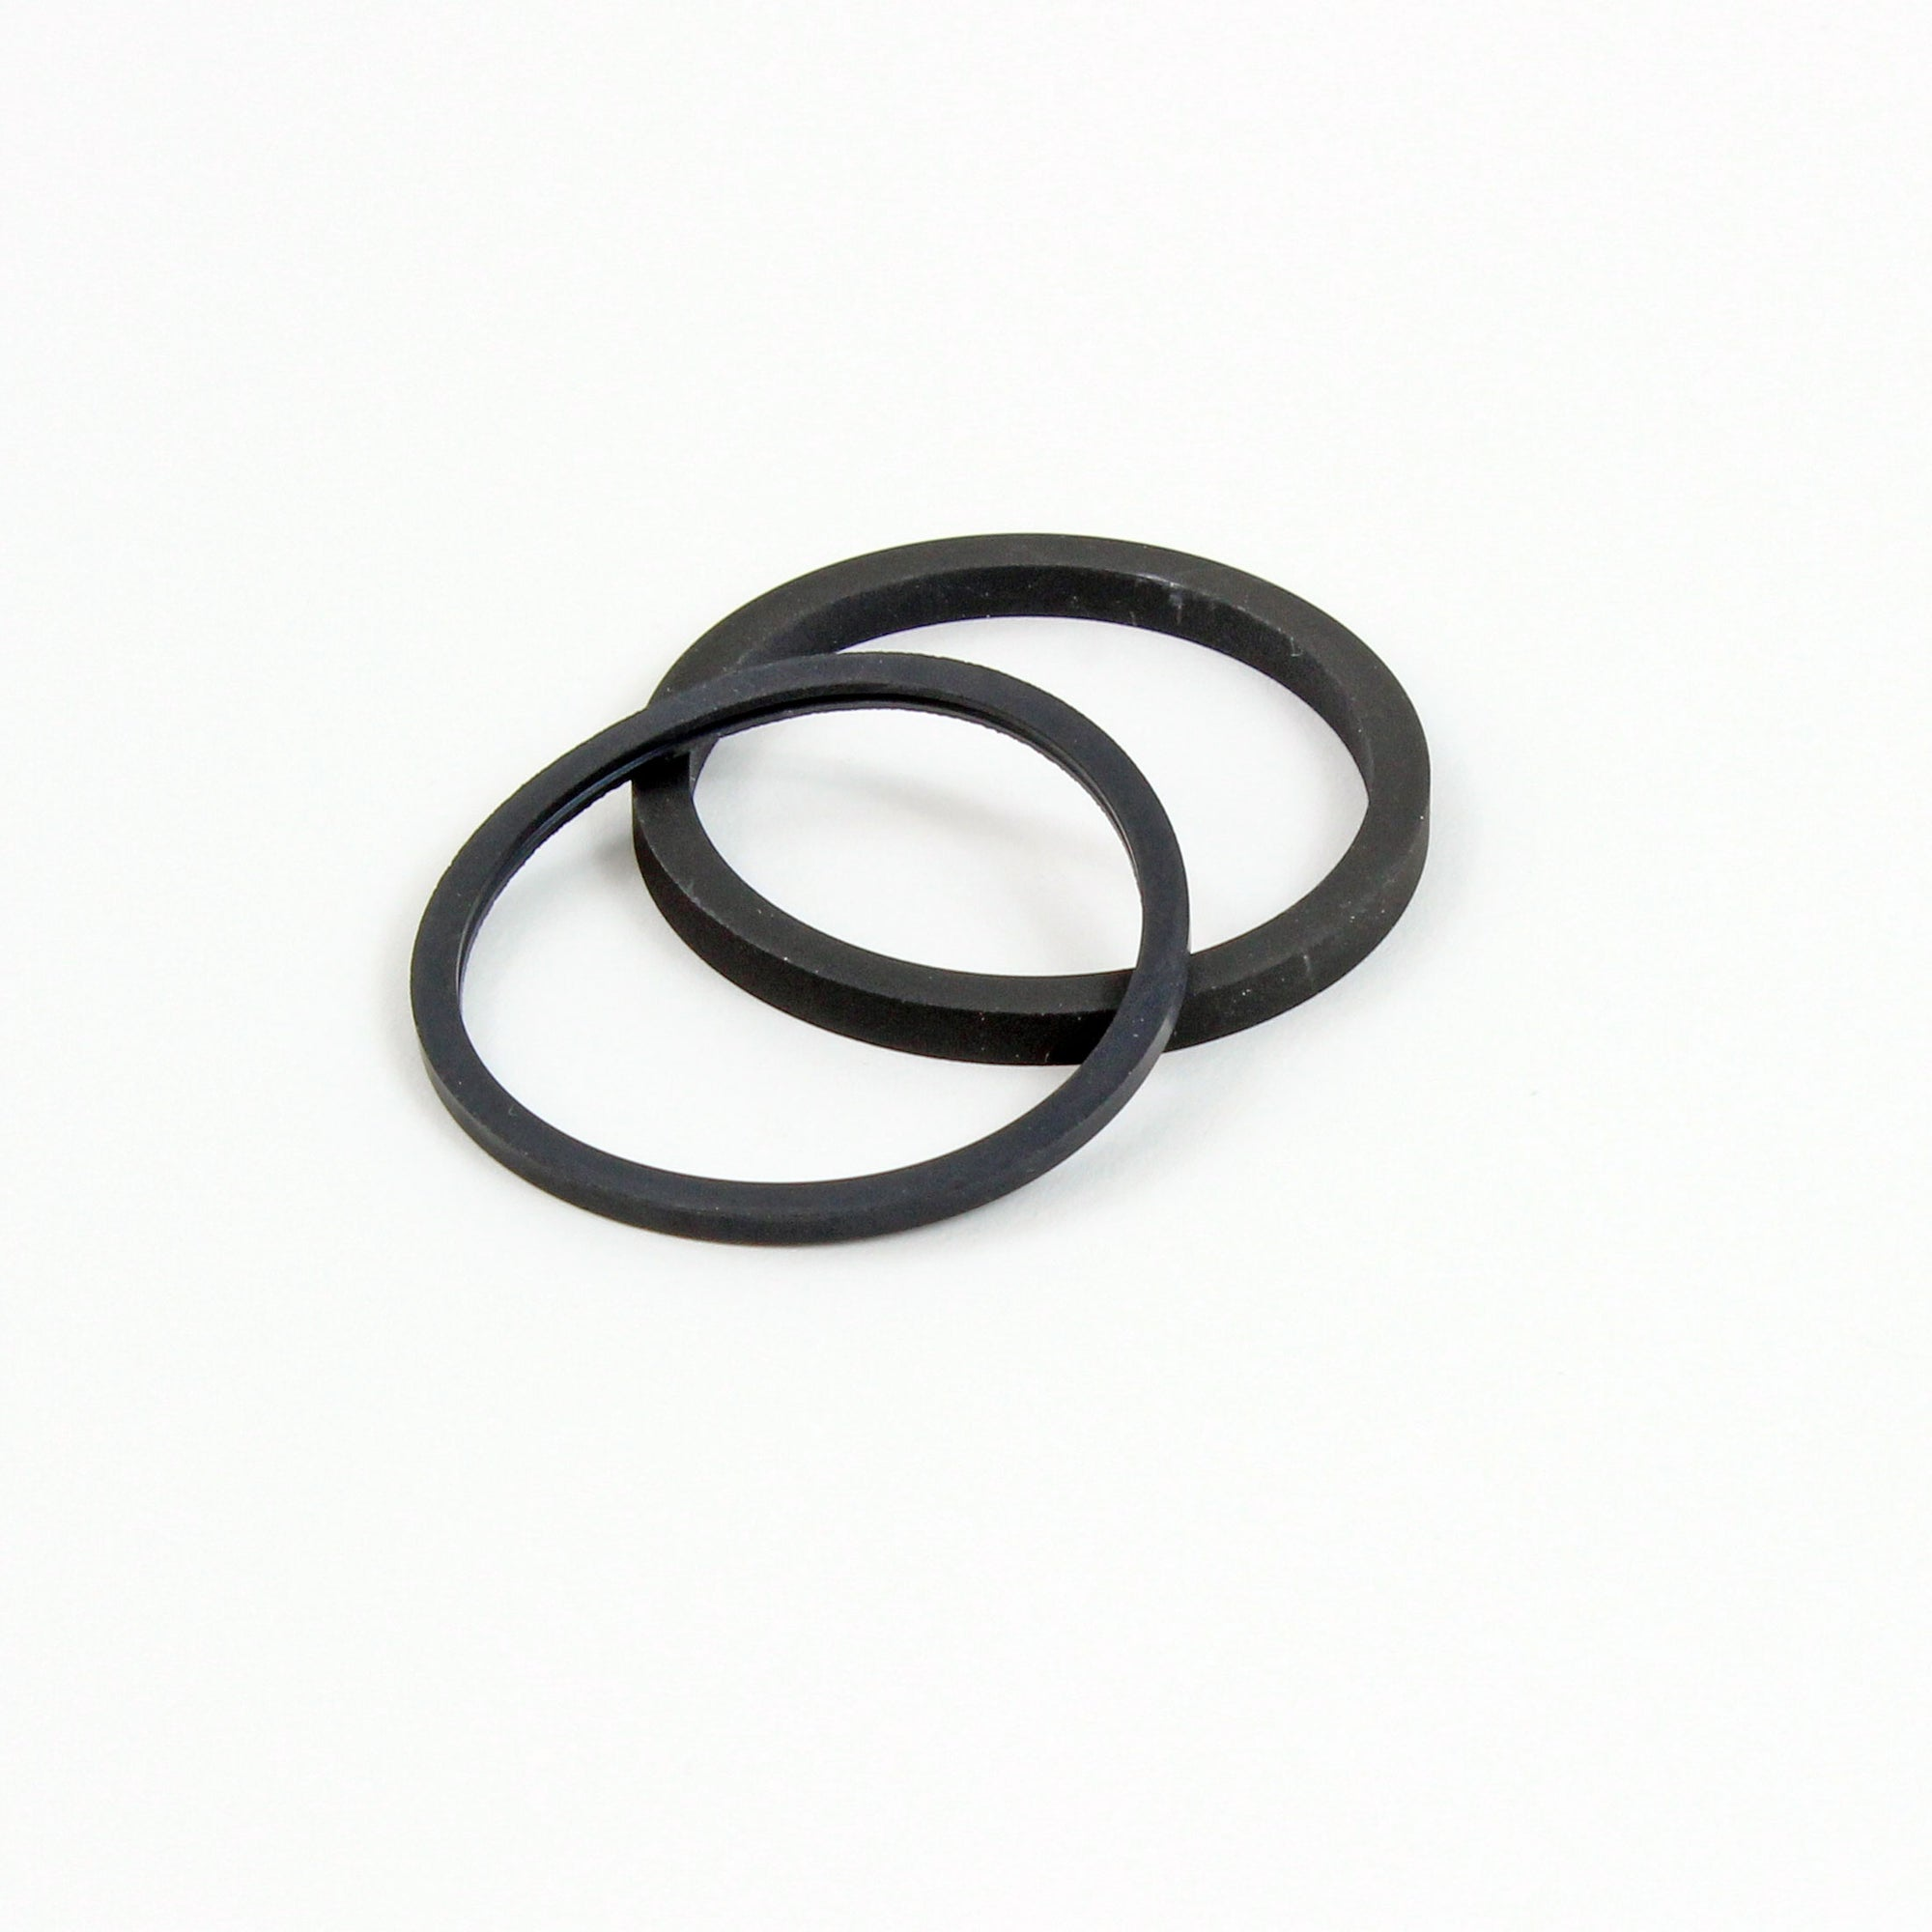 Internal Diameter (I.D) 34mm - Motorcycle Brake Caliper Seal set (Pressure seal - Dust Seal)